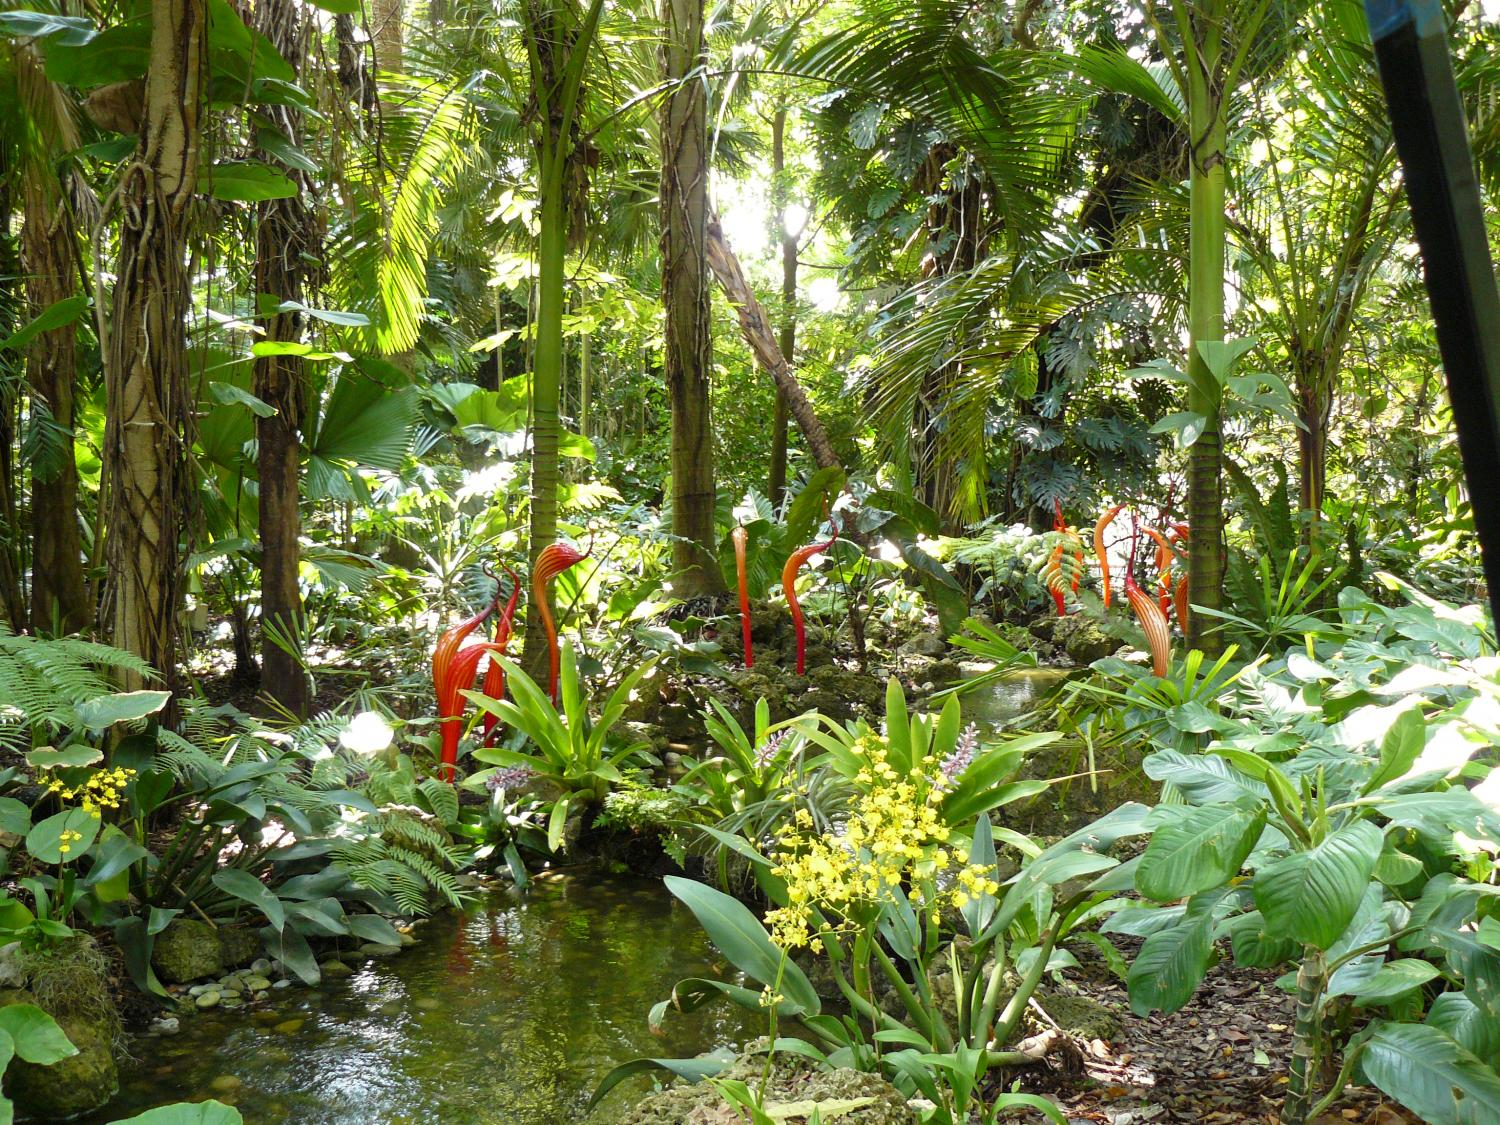 World 39 s botanic gardens contain a third of all known plant - Fairchild tropical botanic garden ...